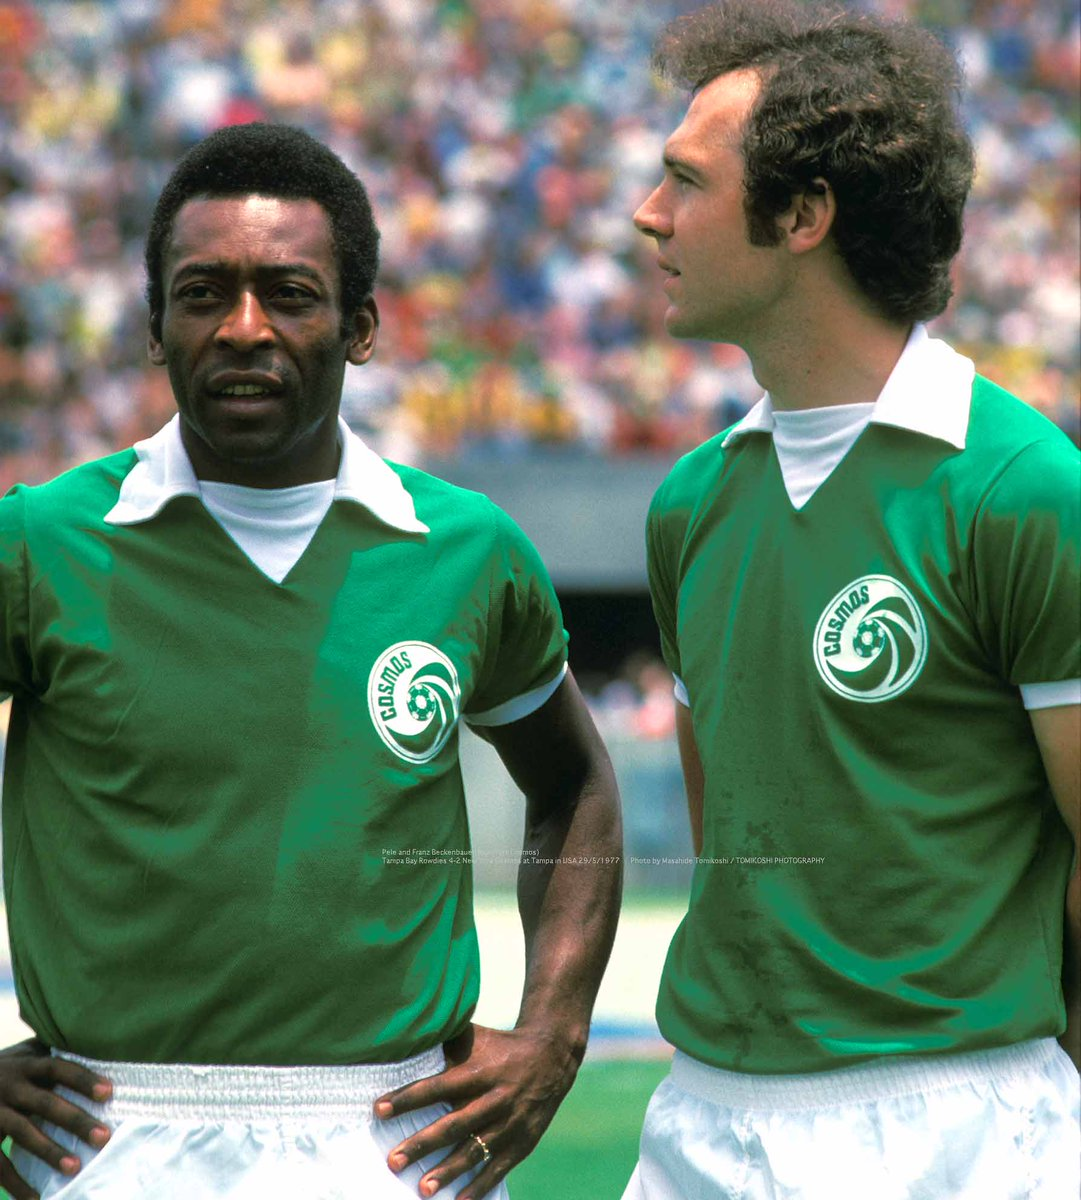 "tphoto ar Twitter: ""Pele and Franz Beckenbauer(New York Cosmos) Tampa Bay Rowdies 4-2 New York Cosmos at Tampa in USA 29/5/1977 Photo by Masahide Tomikoshi / TOMIKOSHI PHOTOGRAPHY… https://t.co/EfeeNFRa9e"""